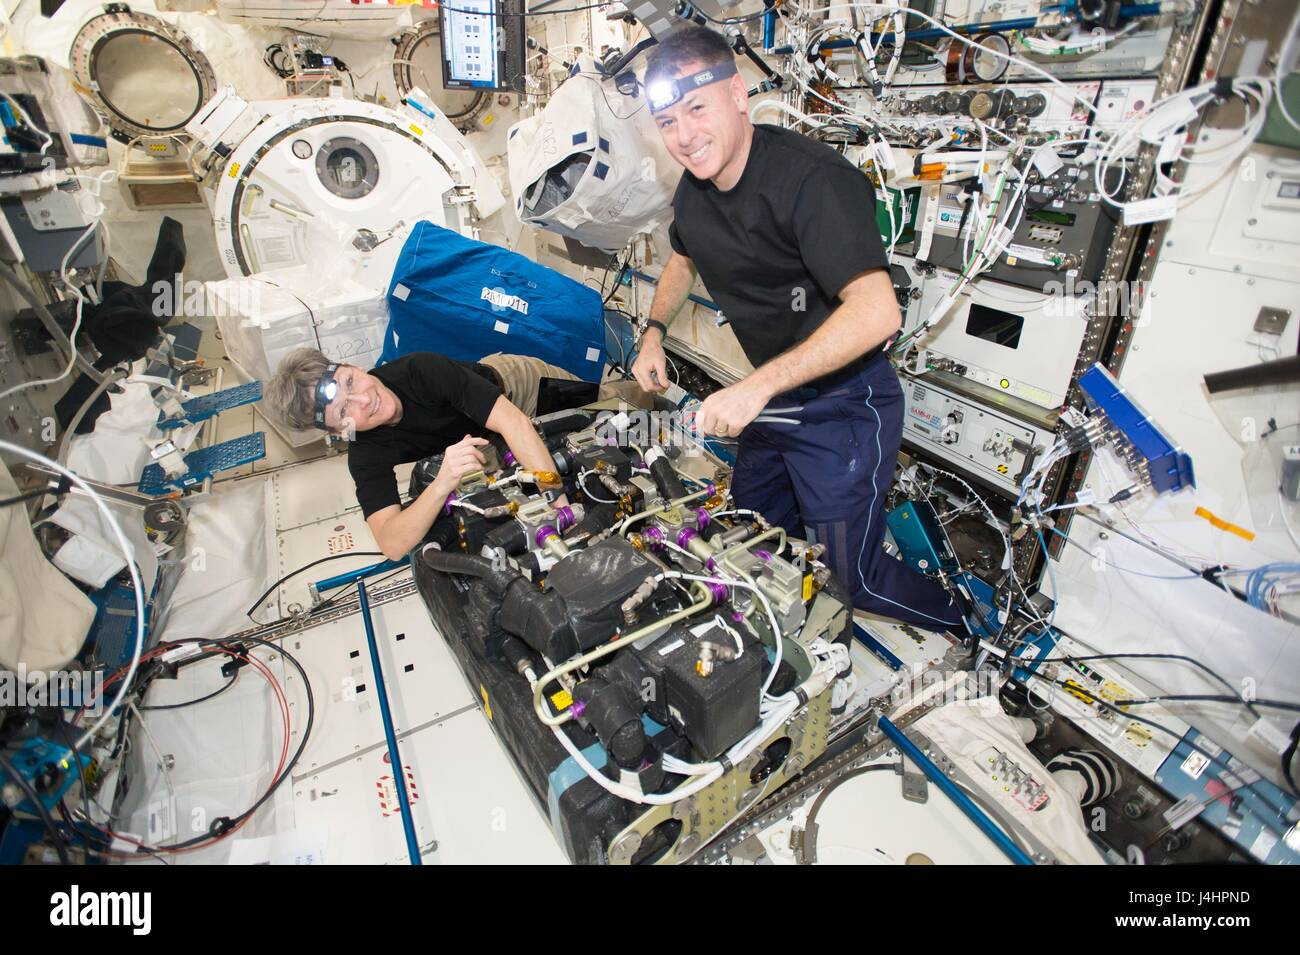 NASA International Space Station Expedition 50 prime crew members American astronauts Peggy Whitson and Shane Kimbrough - Stock Image